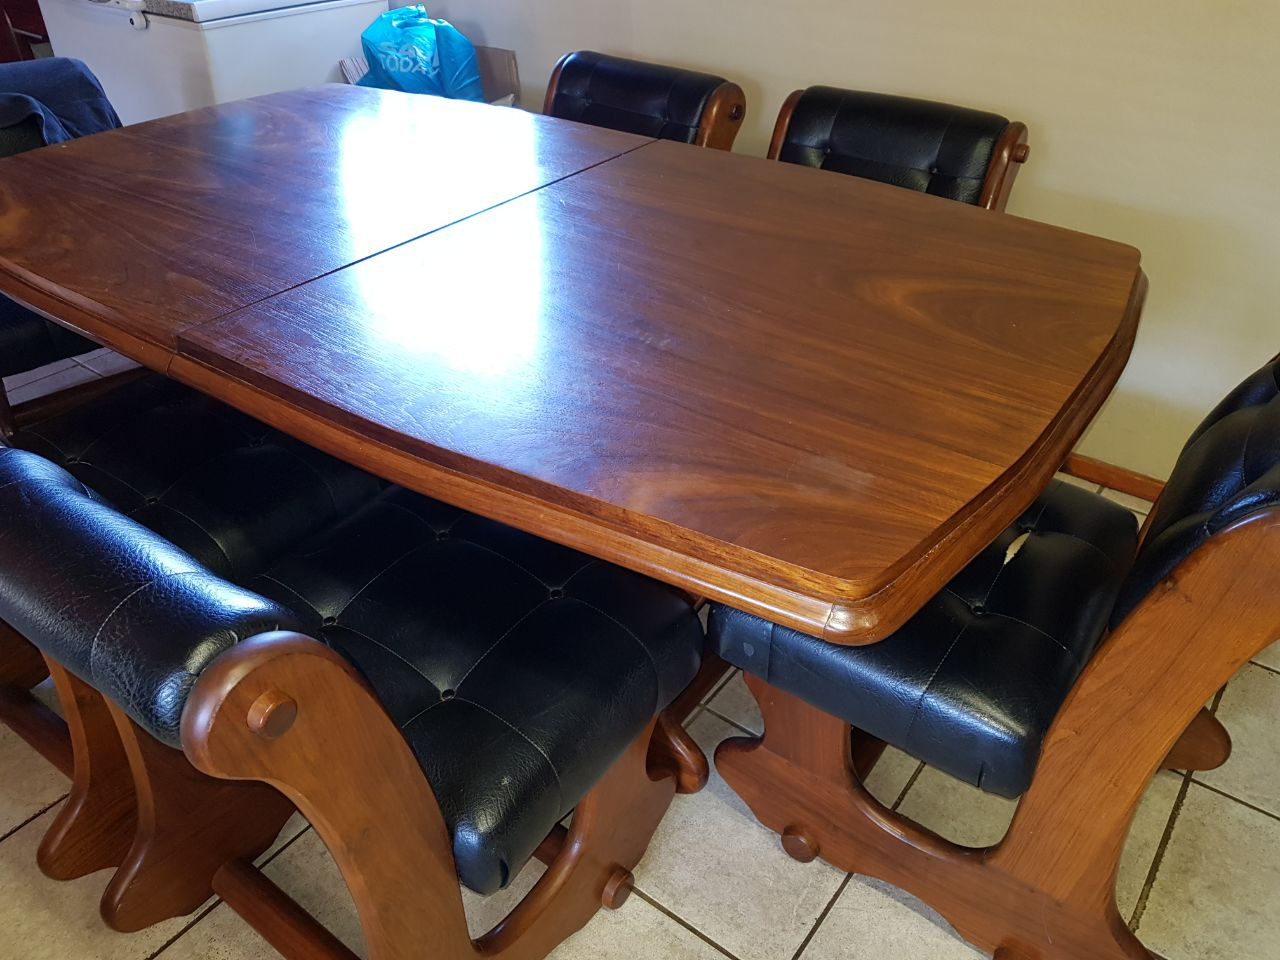 Dining room table and chairs - 8-seater foldable